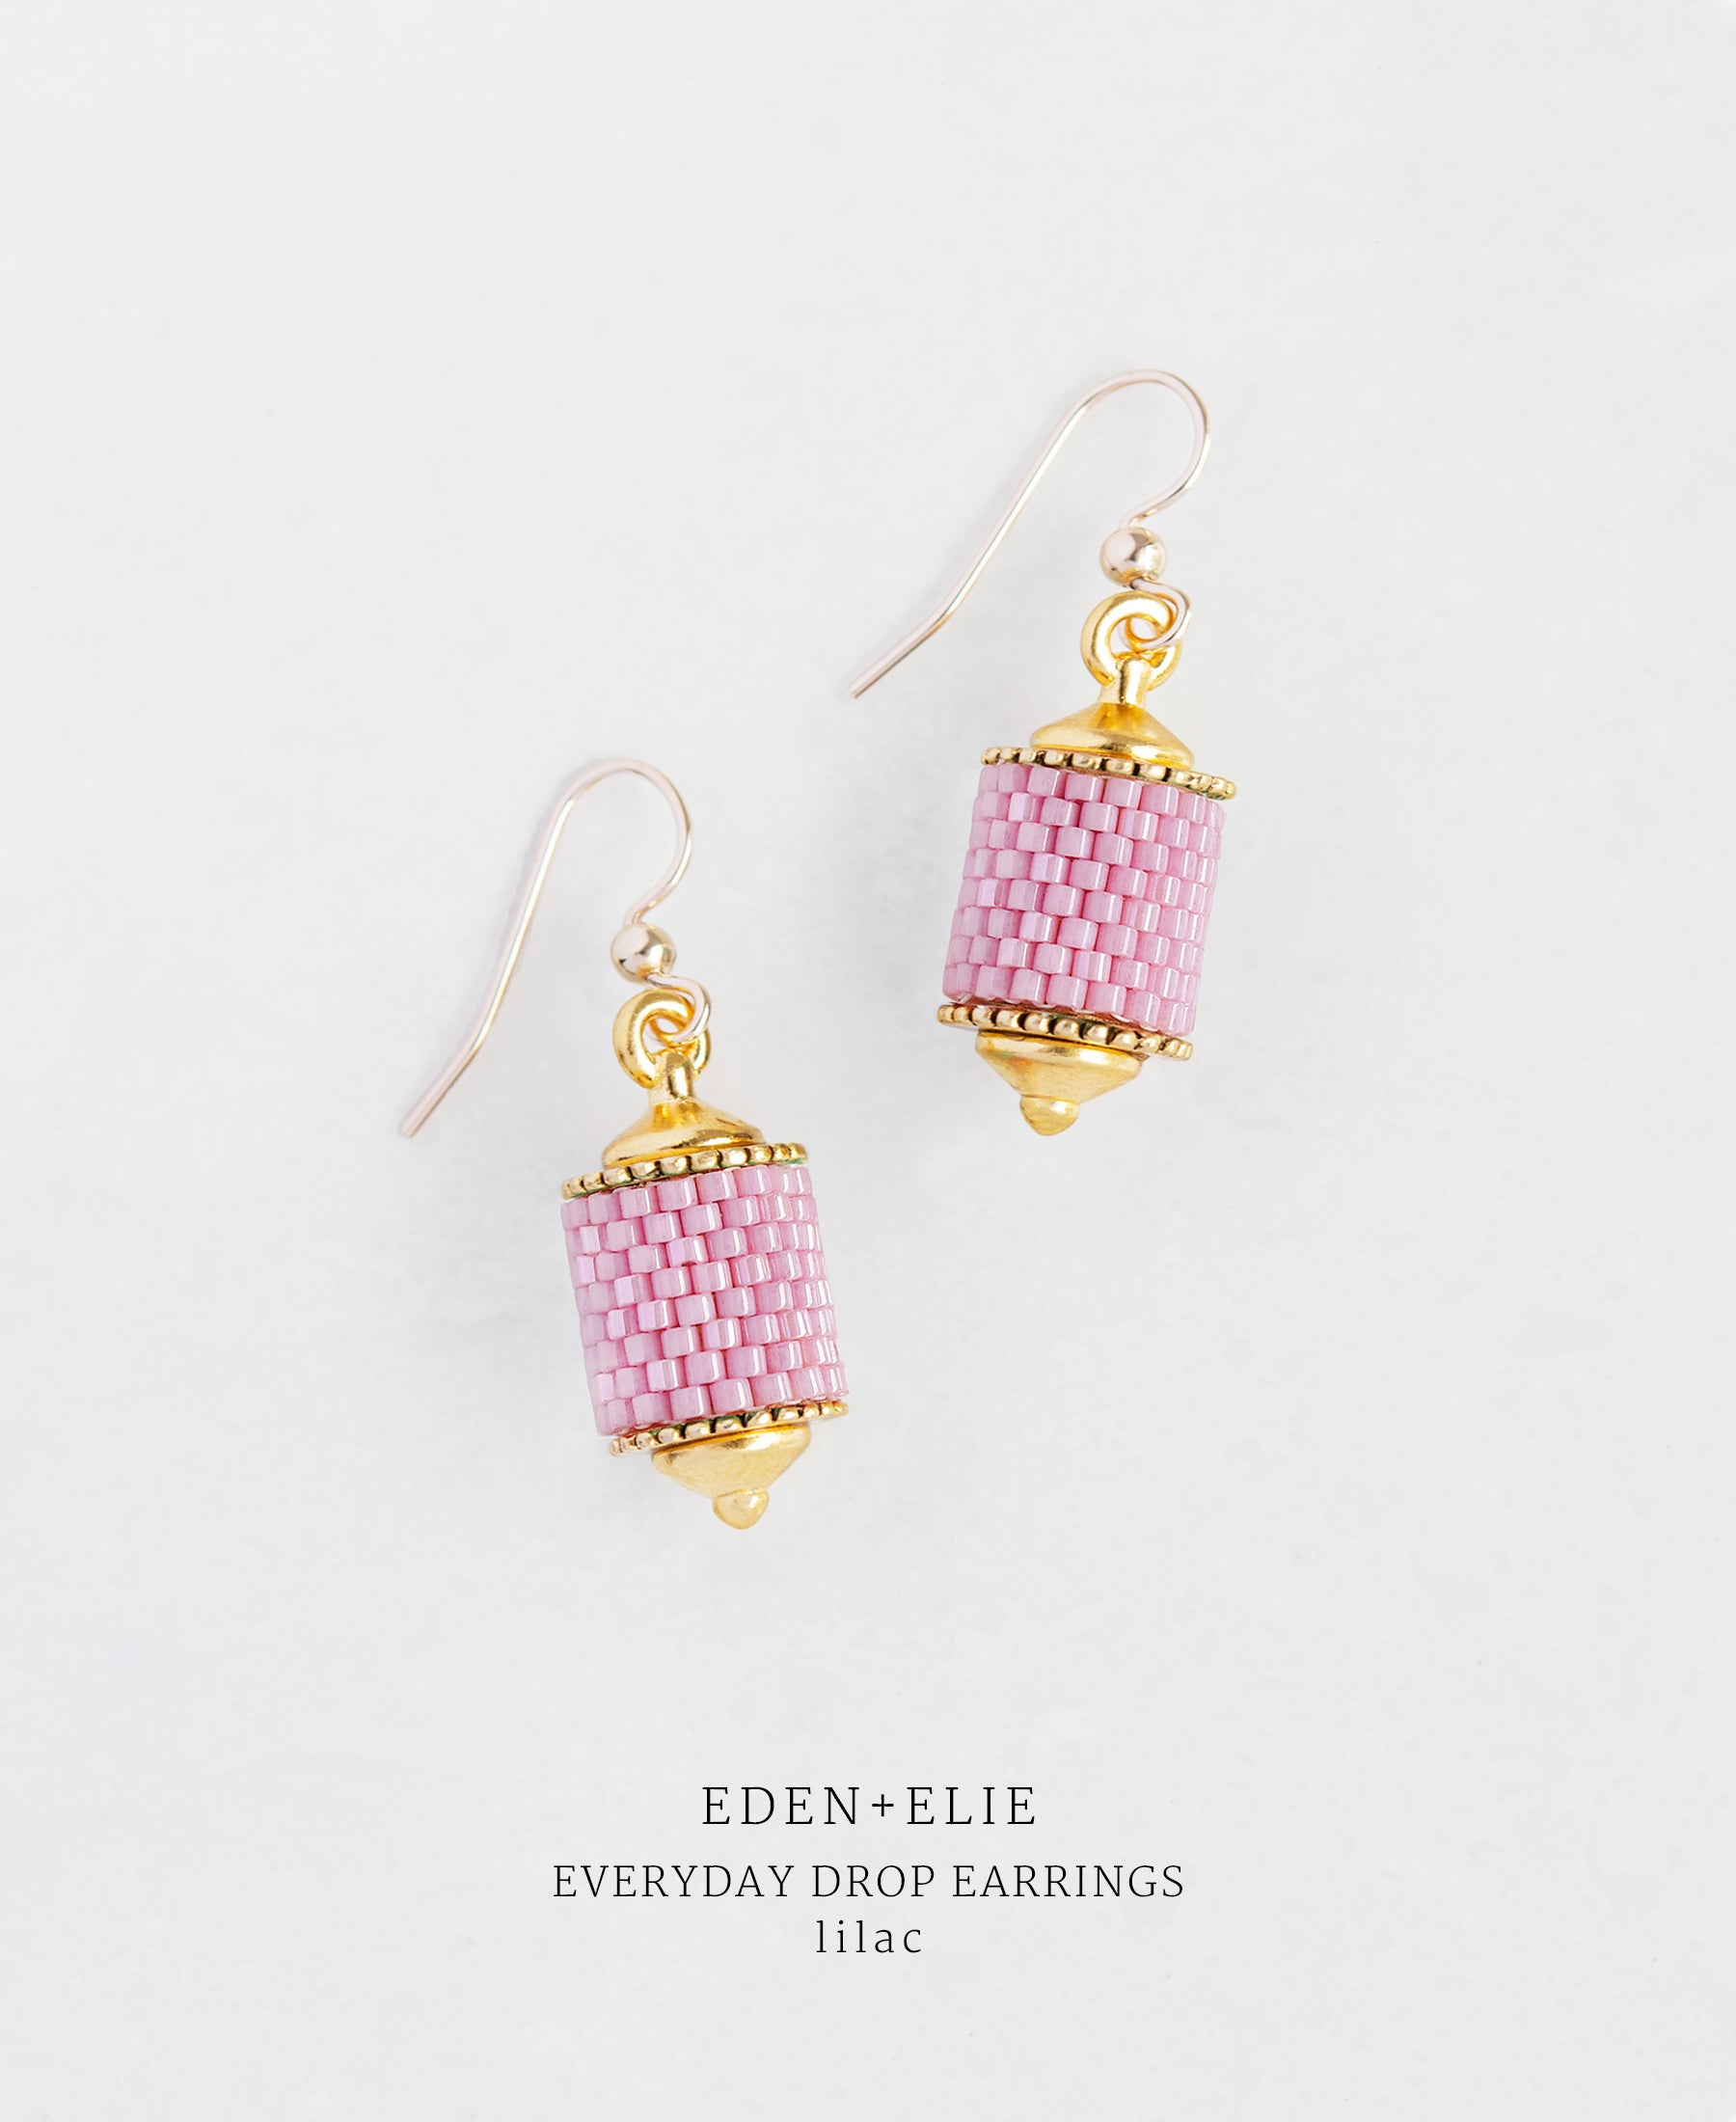 EDEN + ELIE Everyday drop earrings - lilac purple